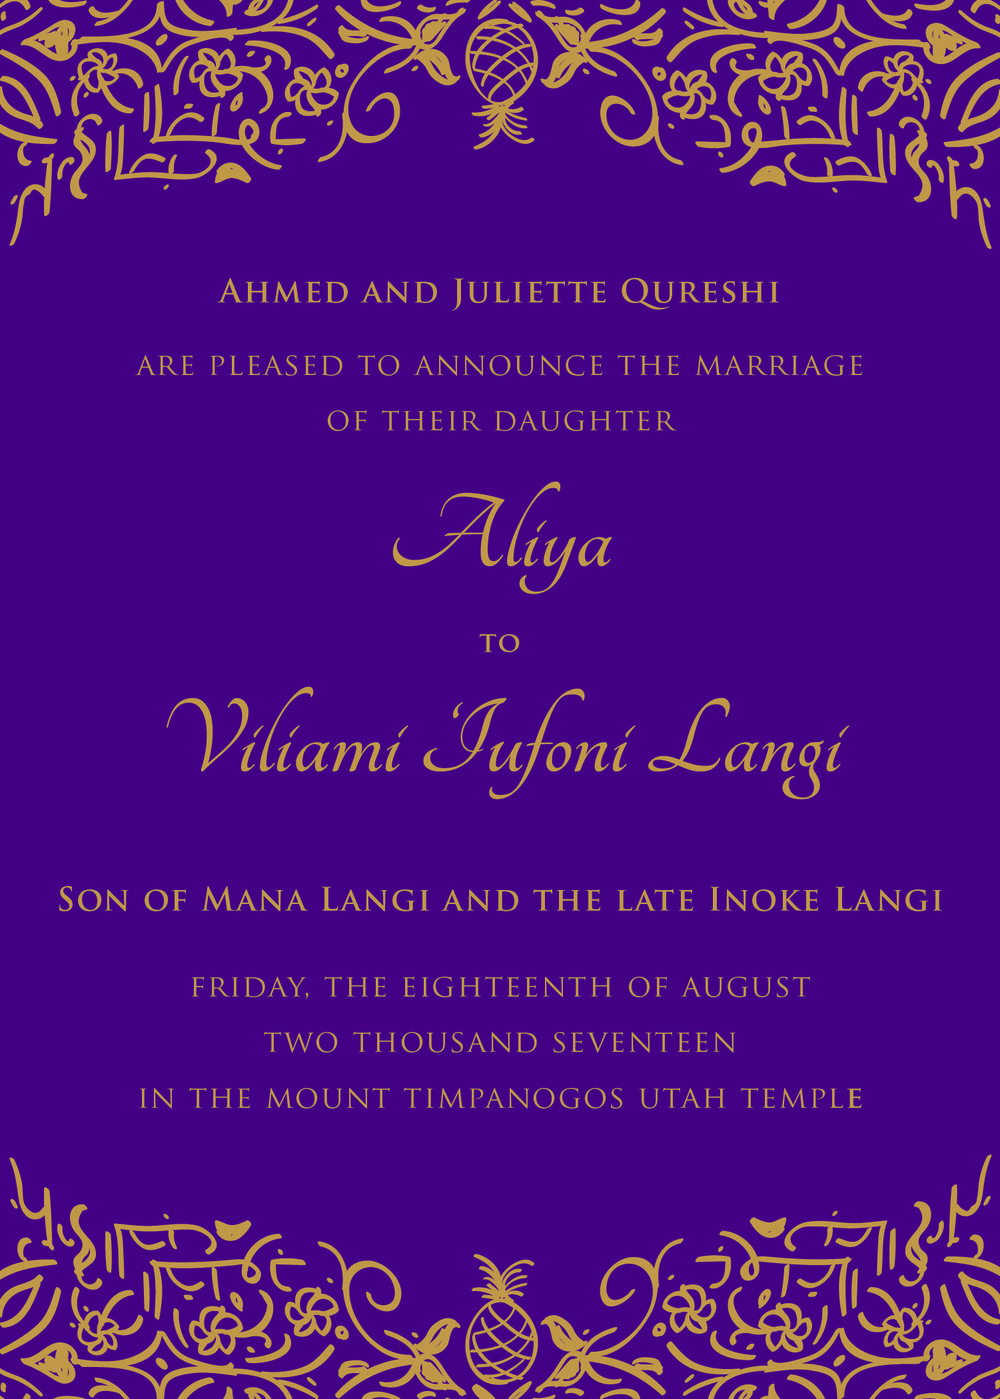 AliyaWedding_Invite Front.jpg